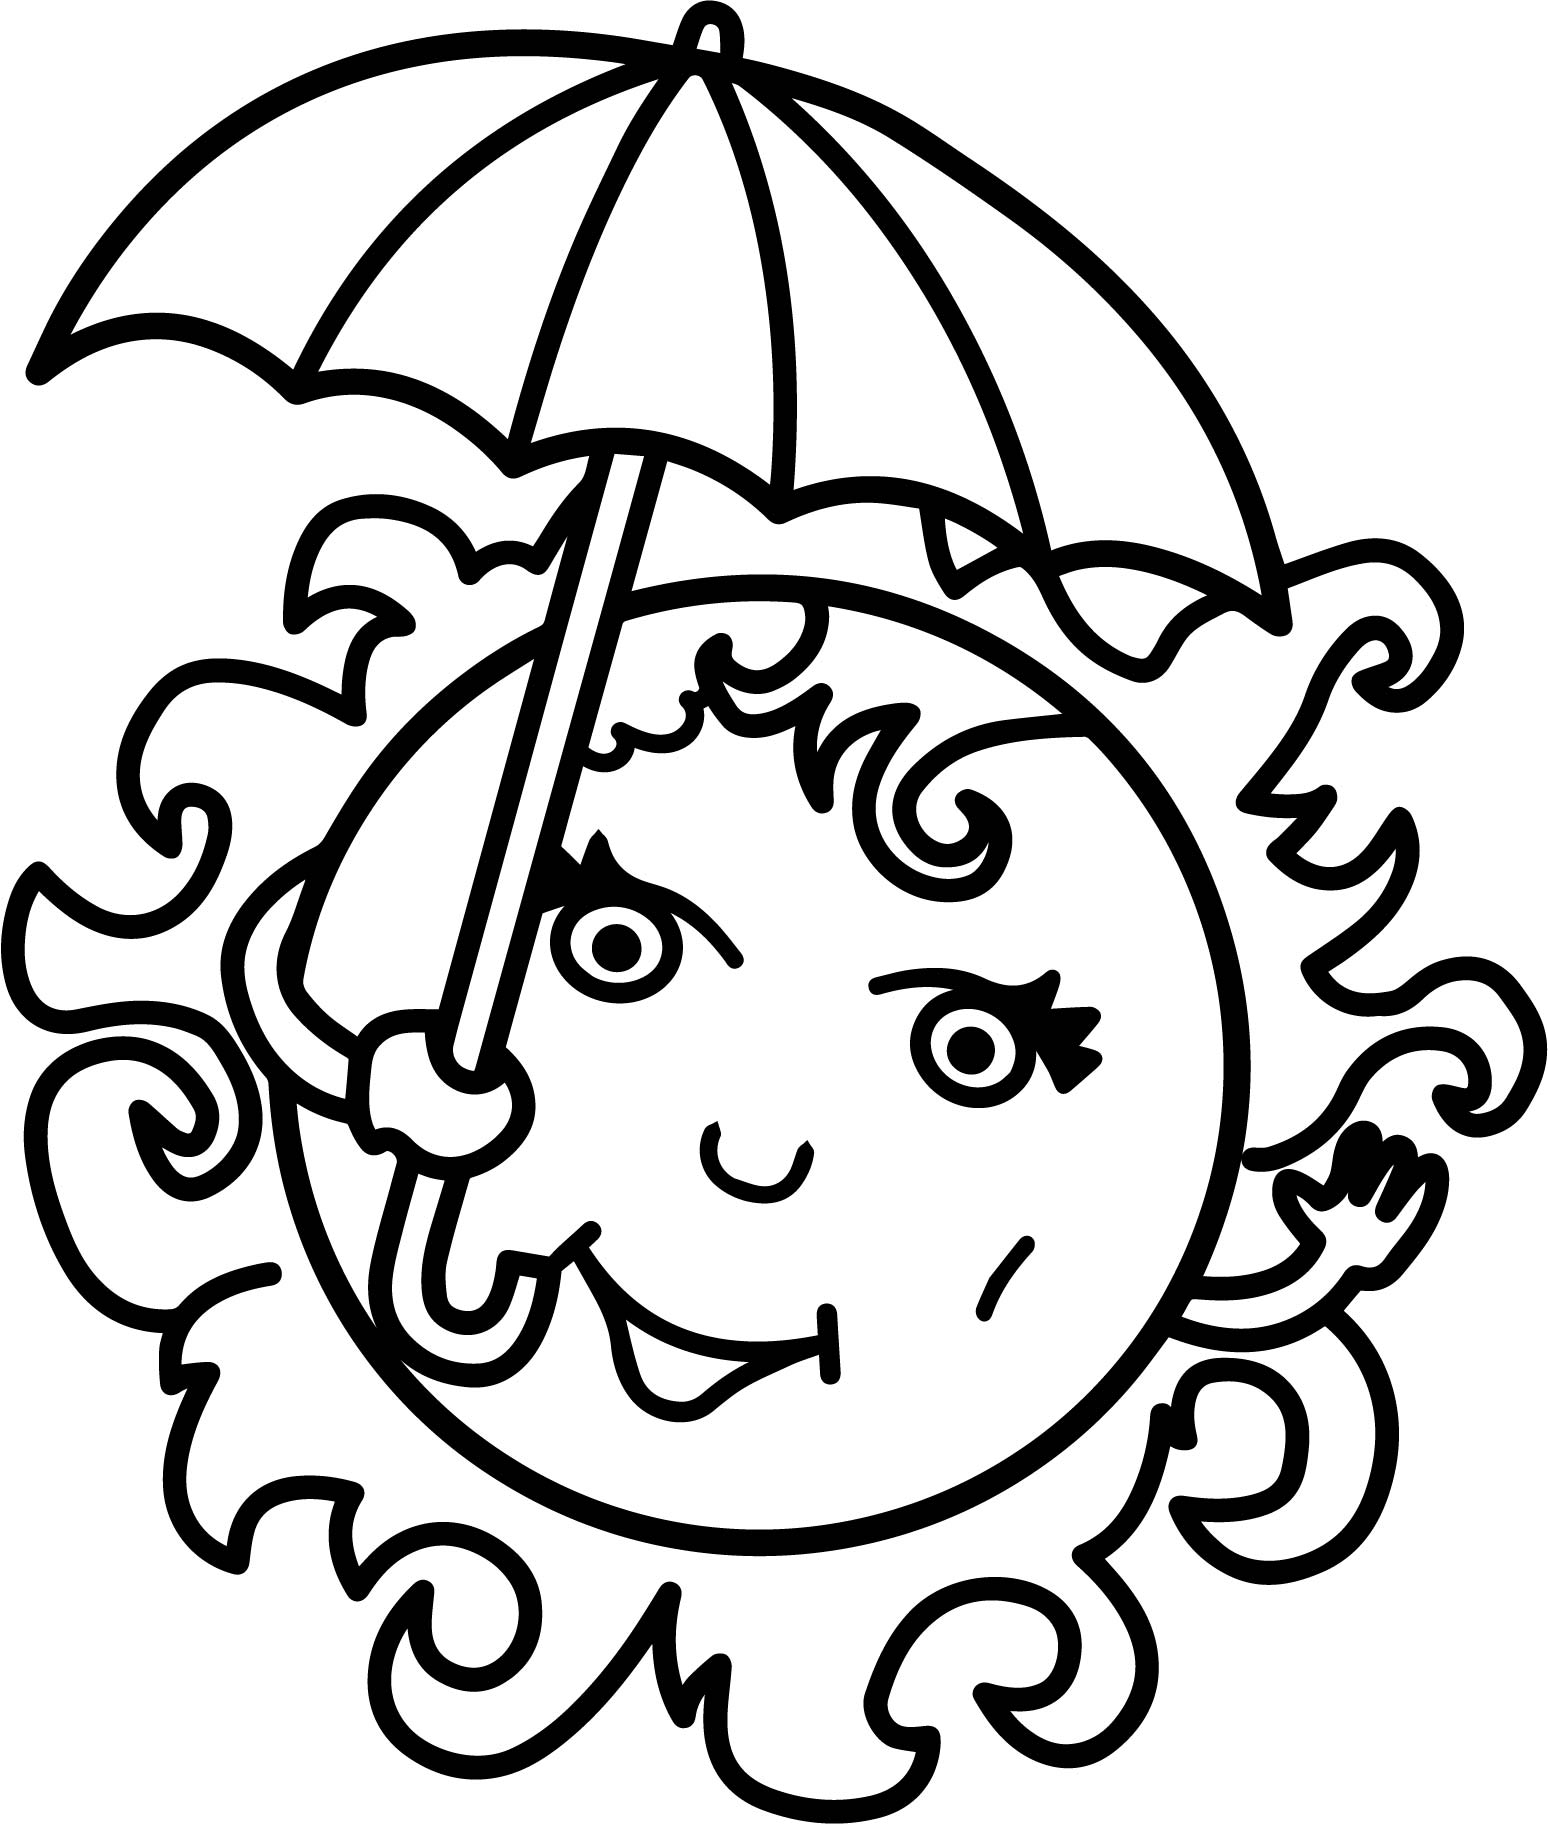 Summer Girl Sun Free Coloring Page | Wecoloringpage.com